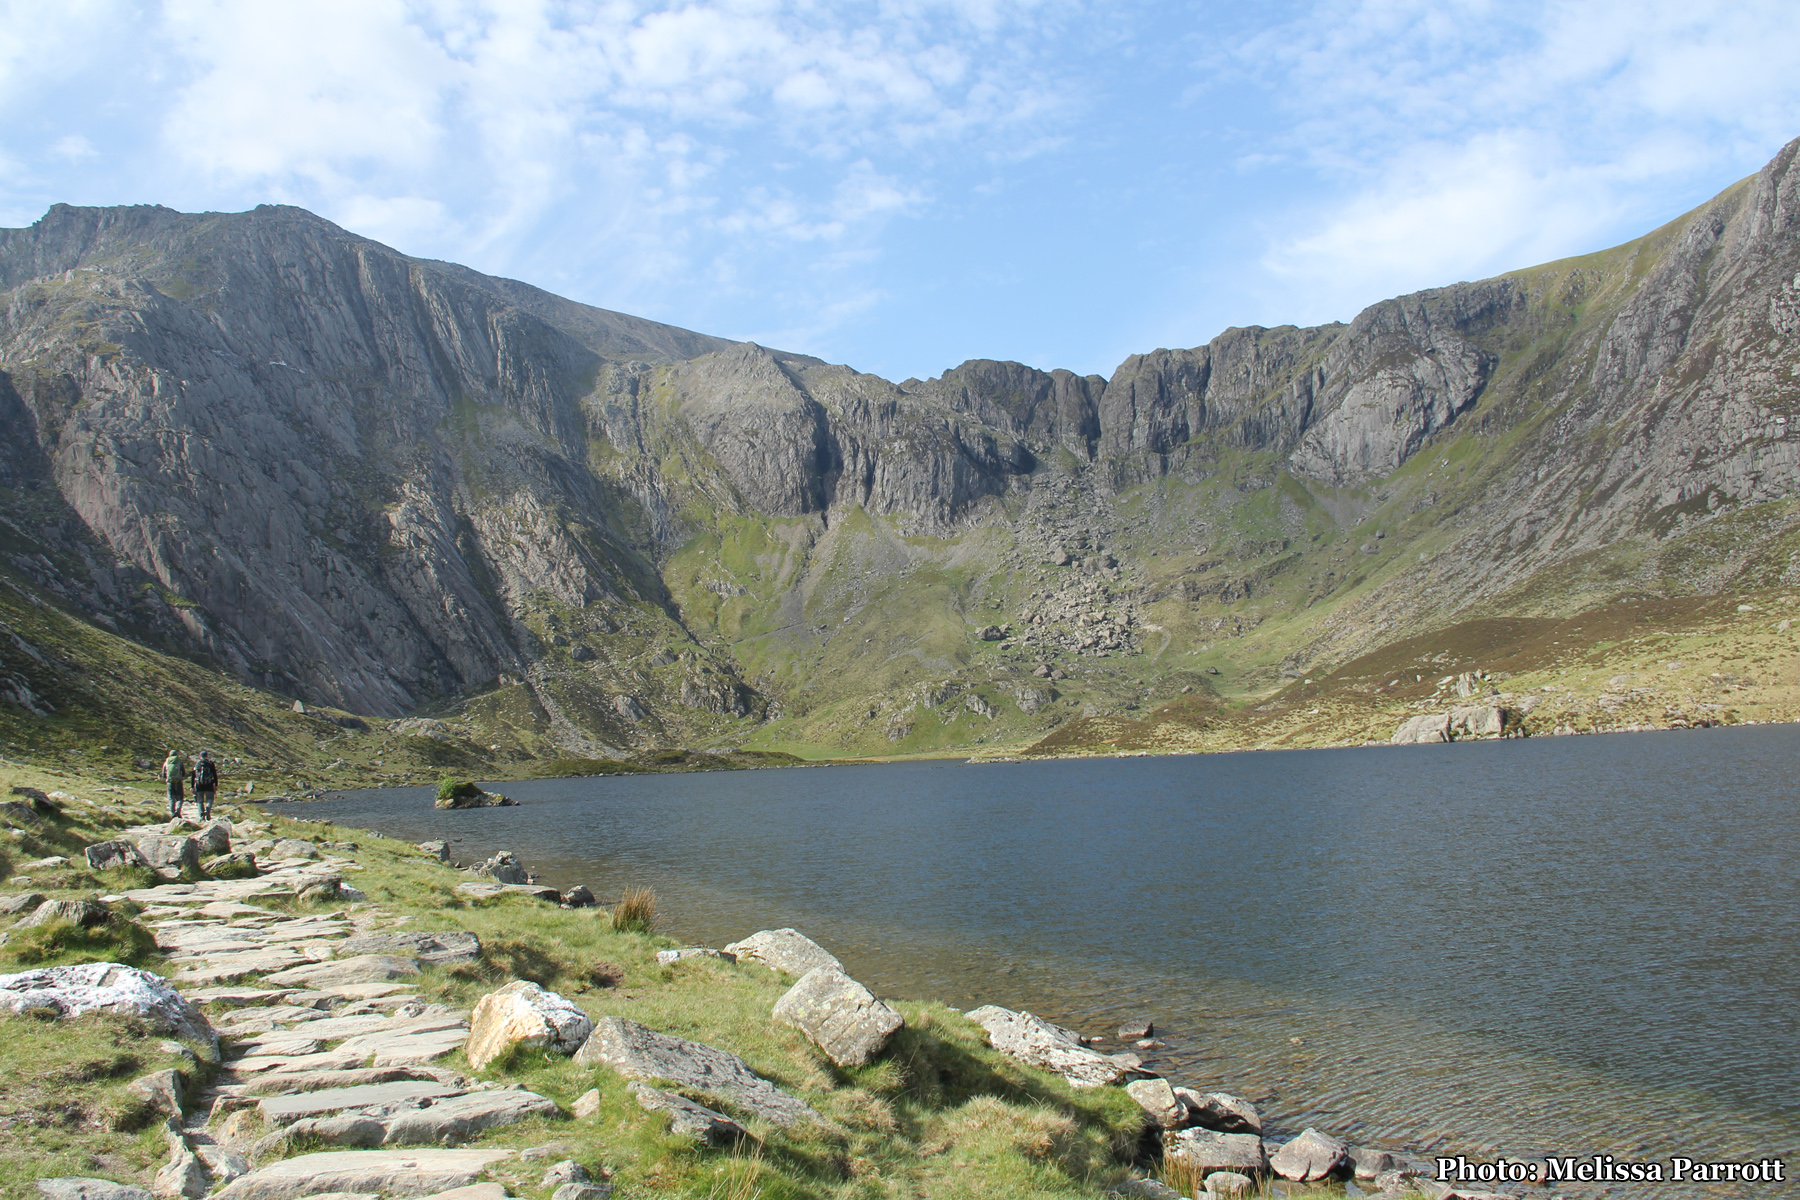 They pointed to a diverging path ahead, near a boulder and said that would take me over the adjacent mountain, down a valley to the lake below Tryfan, but it would take probably 6 hours to traverse and usually they start from the other side (Northern entrance). The lake was bright blue, reflected from the nearly cloudless sky.